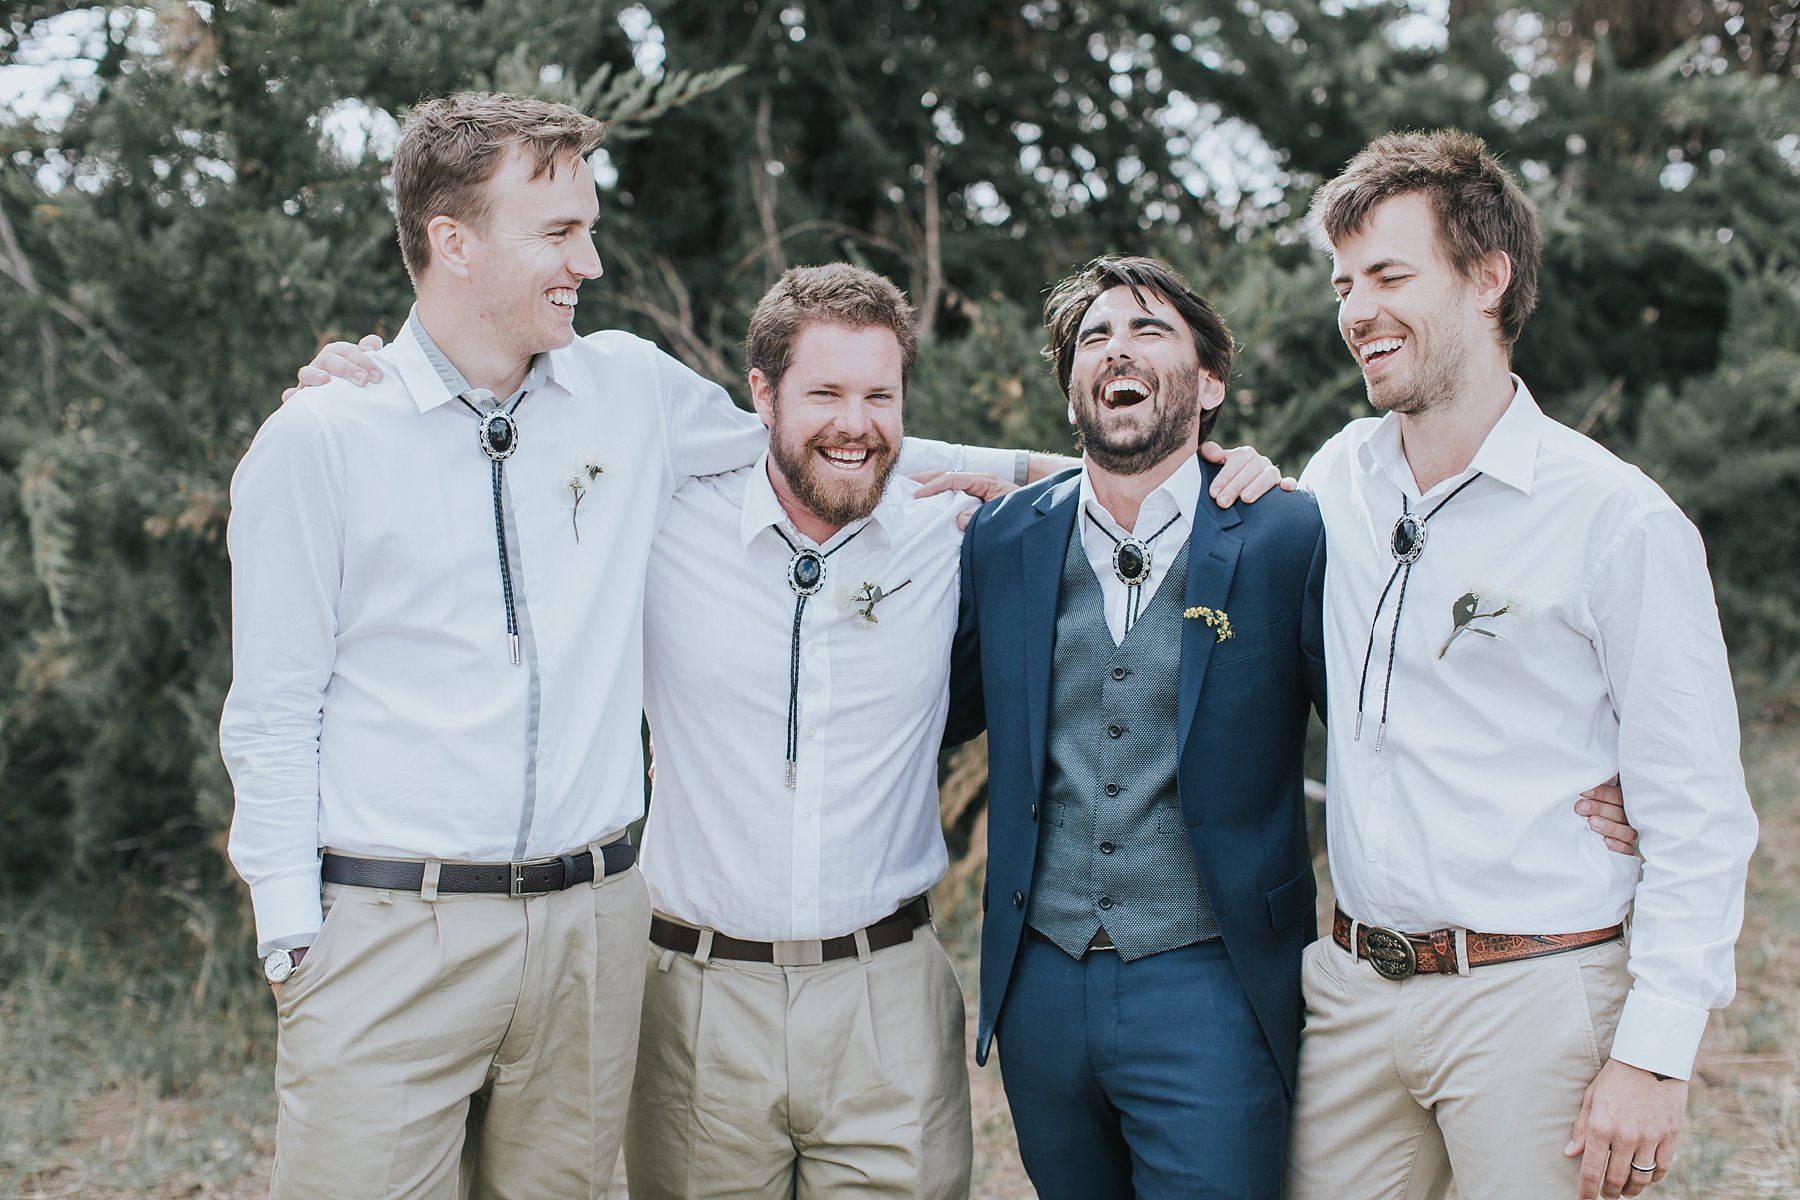 lots of laughter with groomsmen